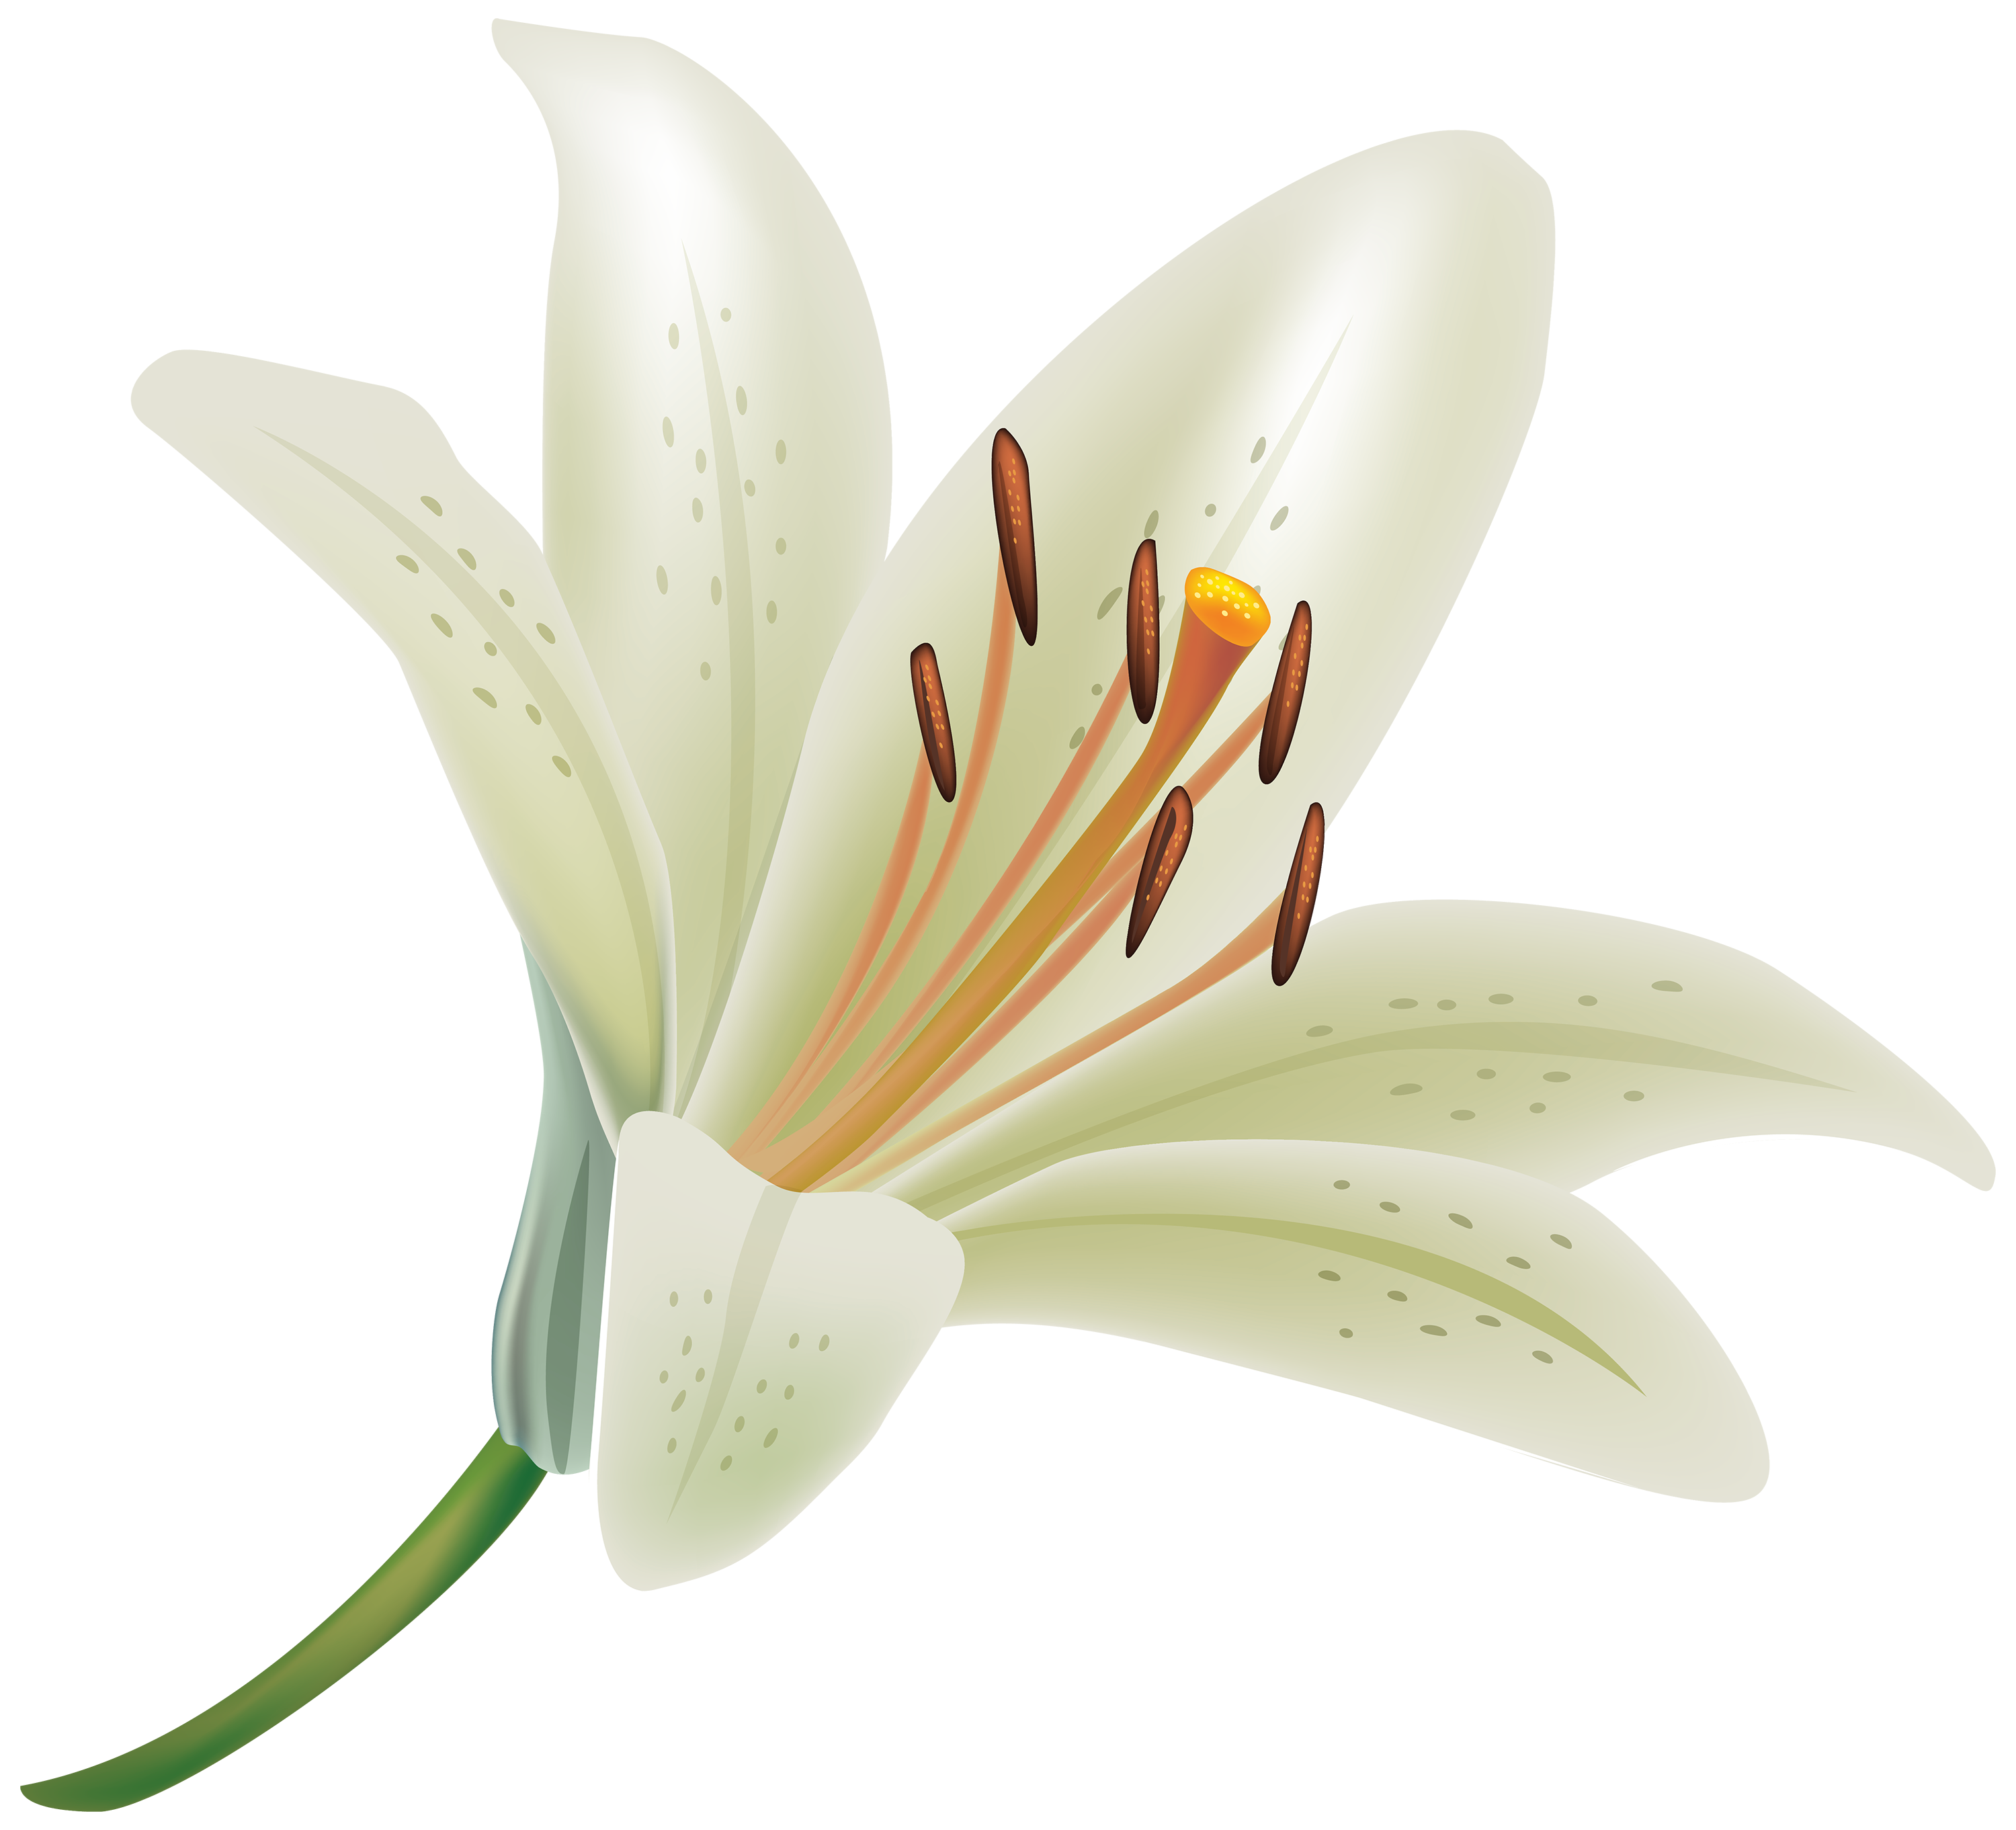 Lily flower clipart png transparent library Pin by Lily Webster on Tat ideas | Pinterest | White lily flower ... png transparent library